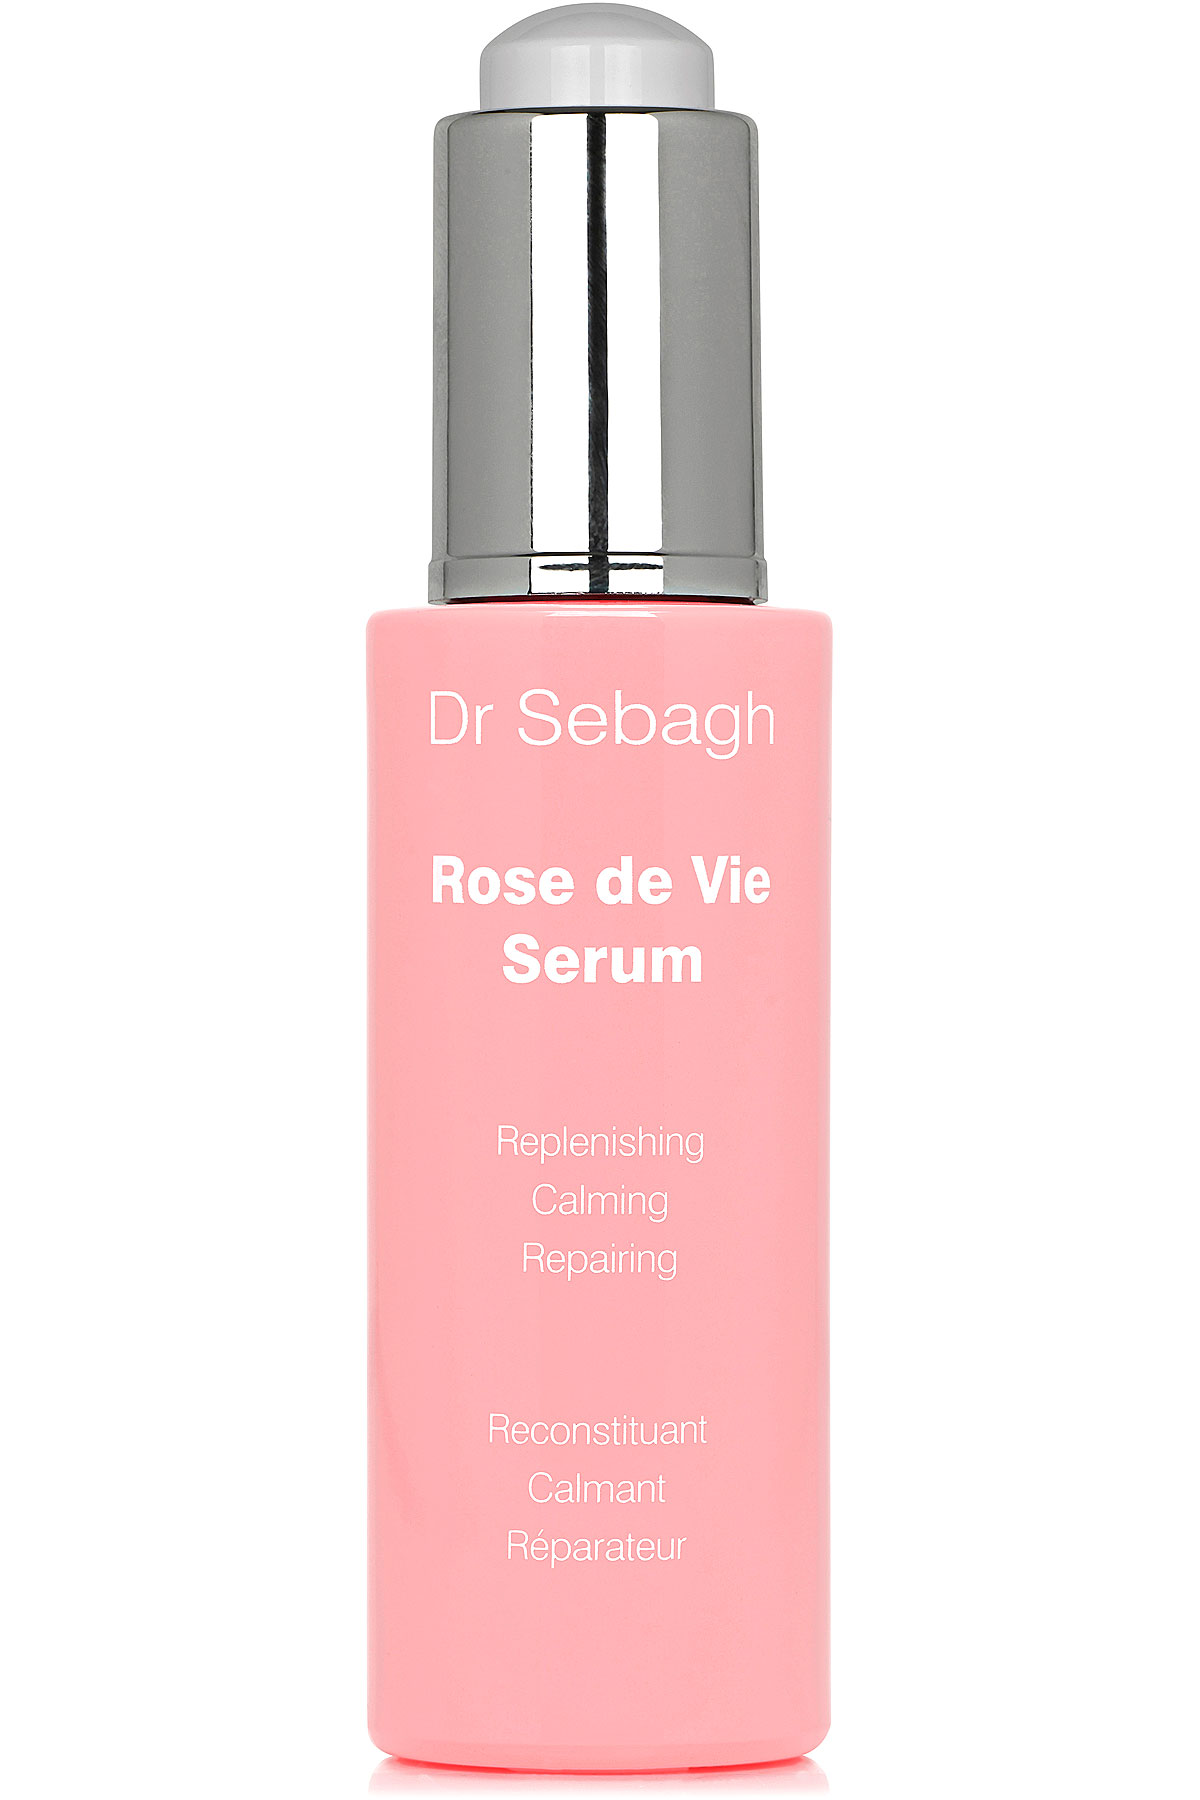 Dr Sebagh Beauty for Women, Rose De Vie Serum - 30 Ml, 2019, 30 ml